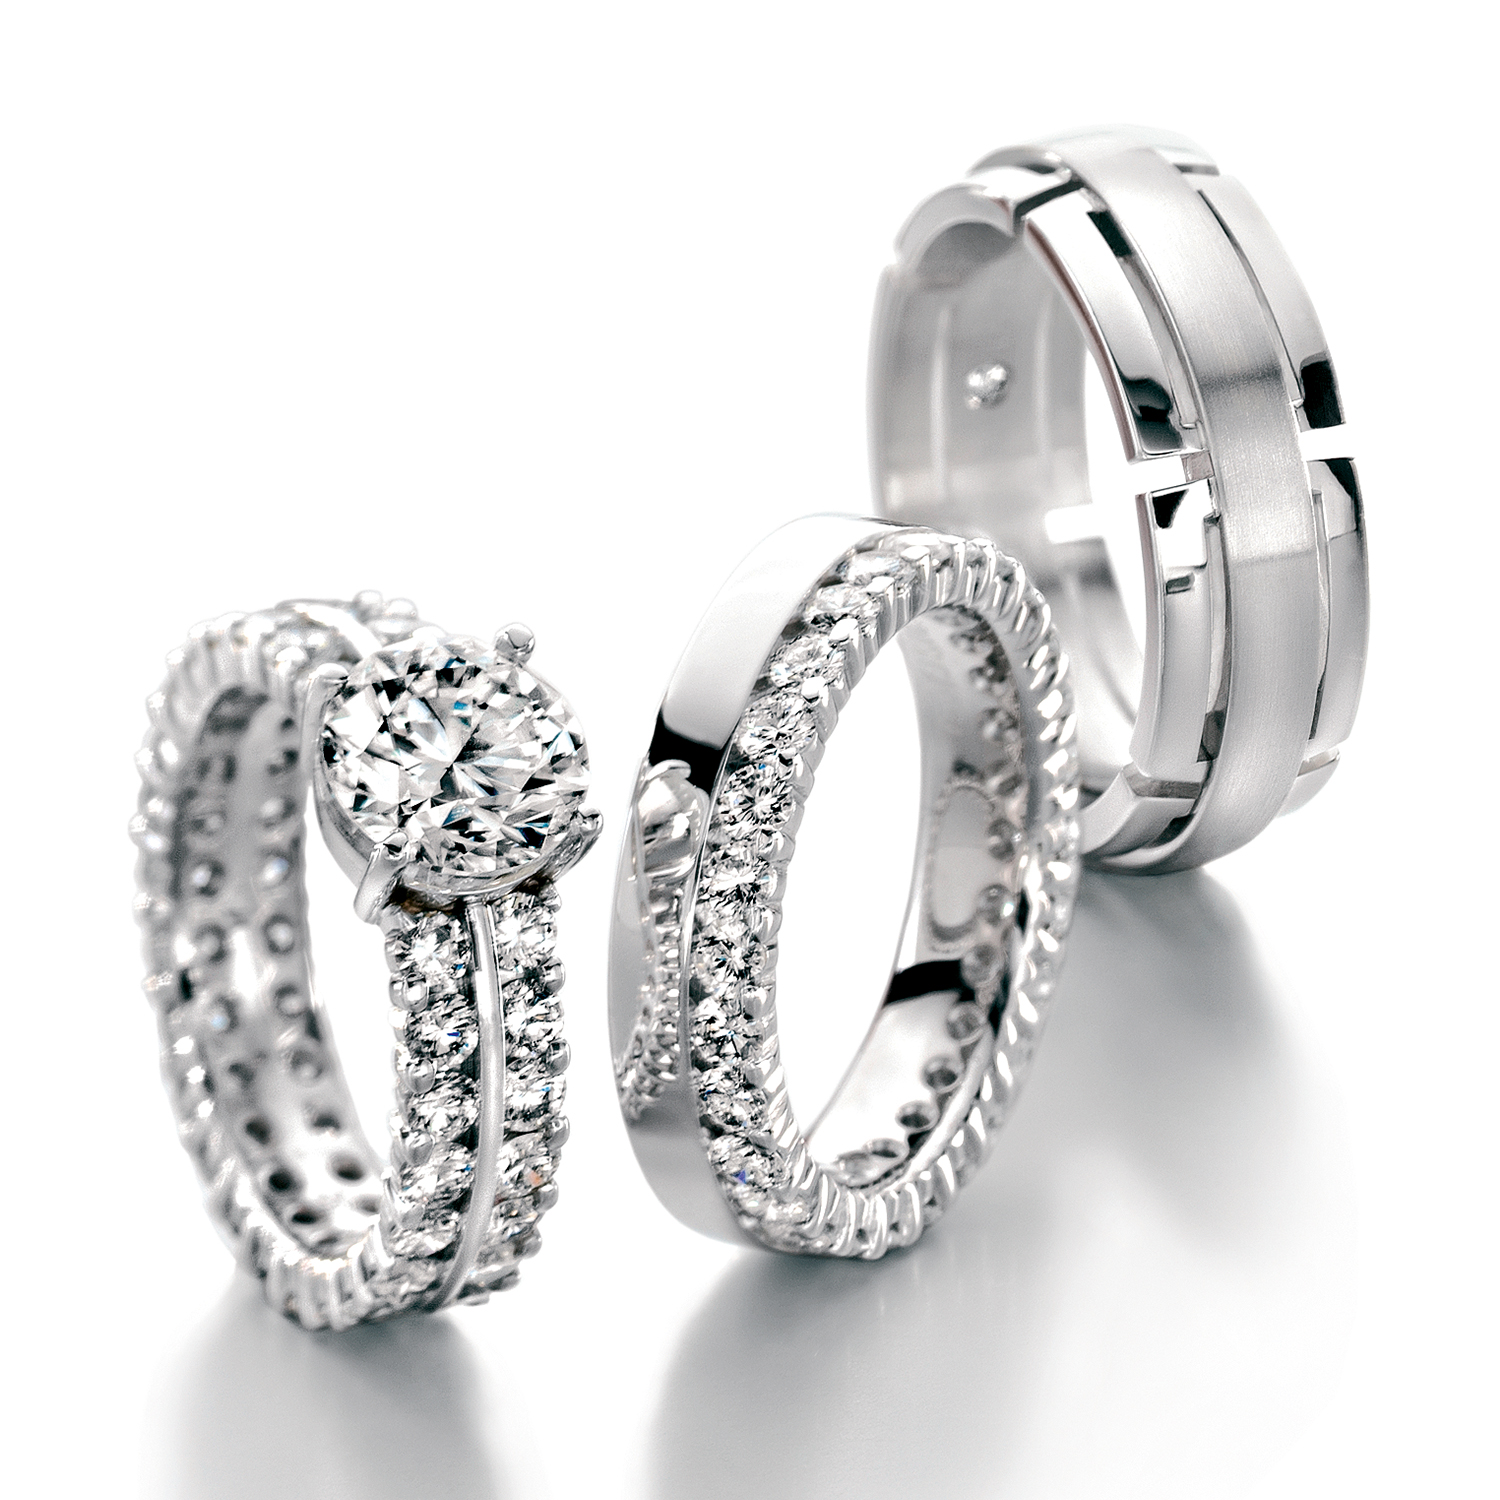 Engagement rings, Triset Furrer Jacot